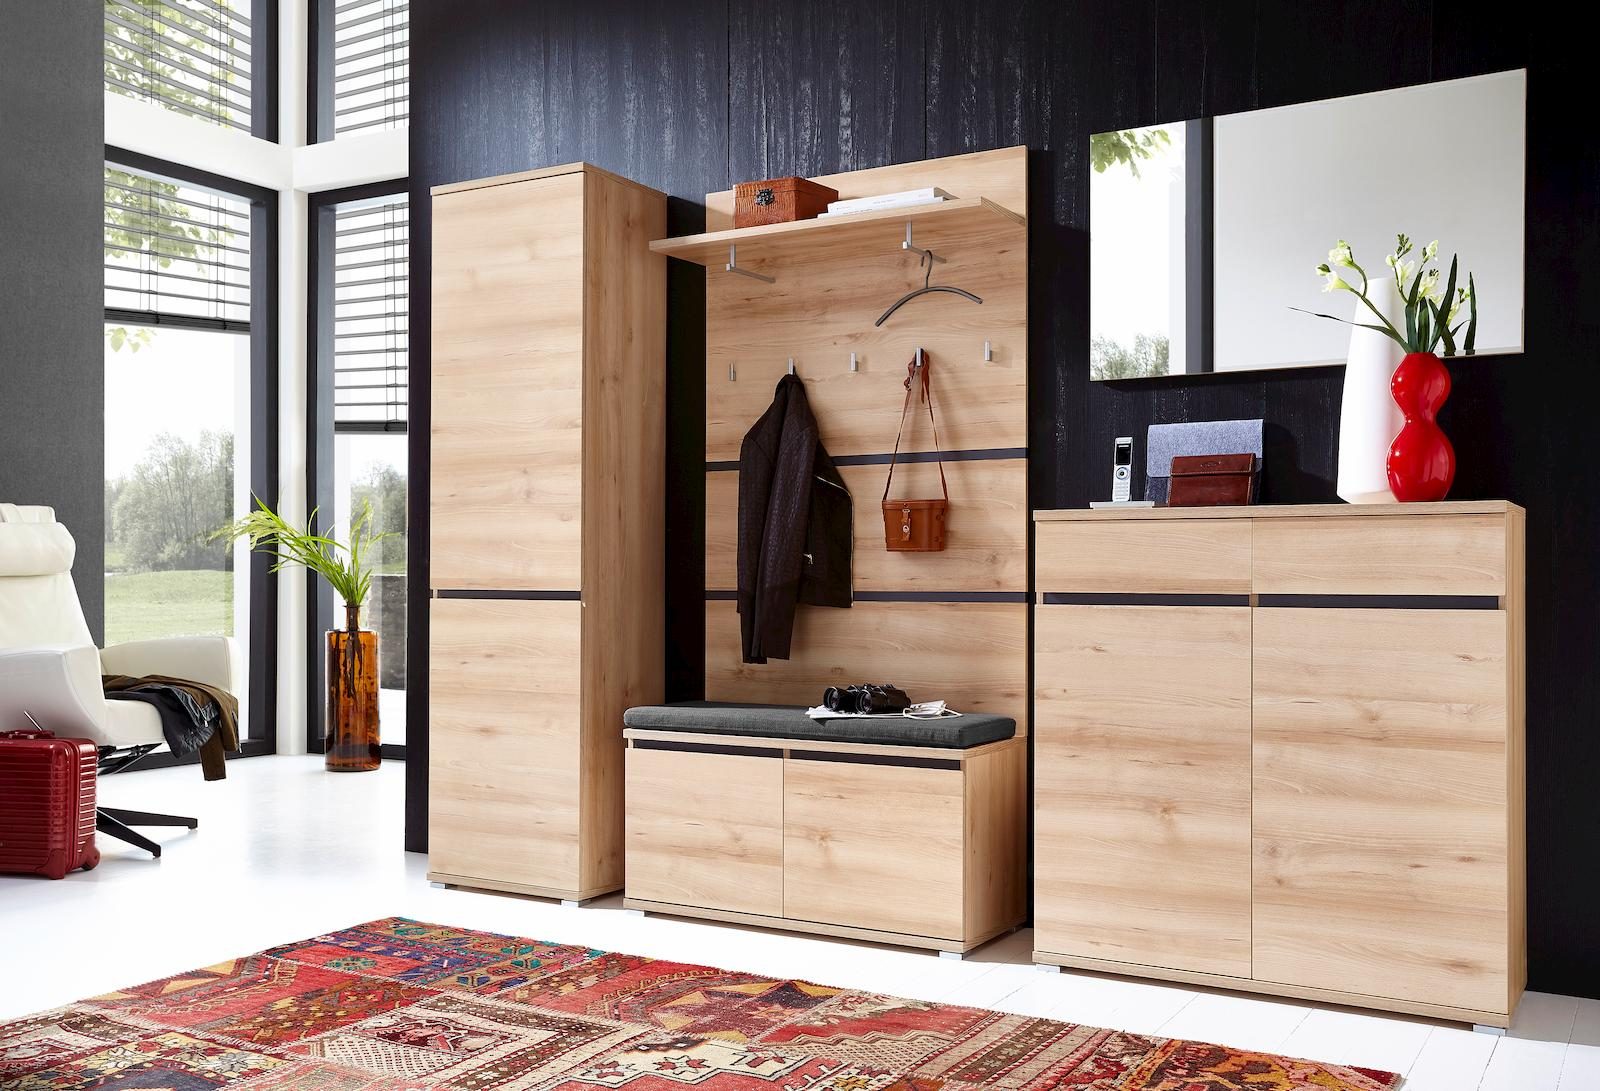 garderobe linda m bel flur schuhschrank garderobenschrank. Black Bedroom Furniture Sets. Home Design Ideas